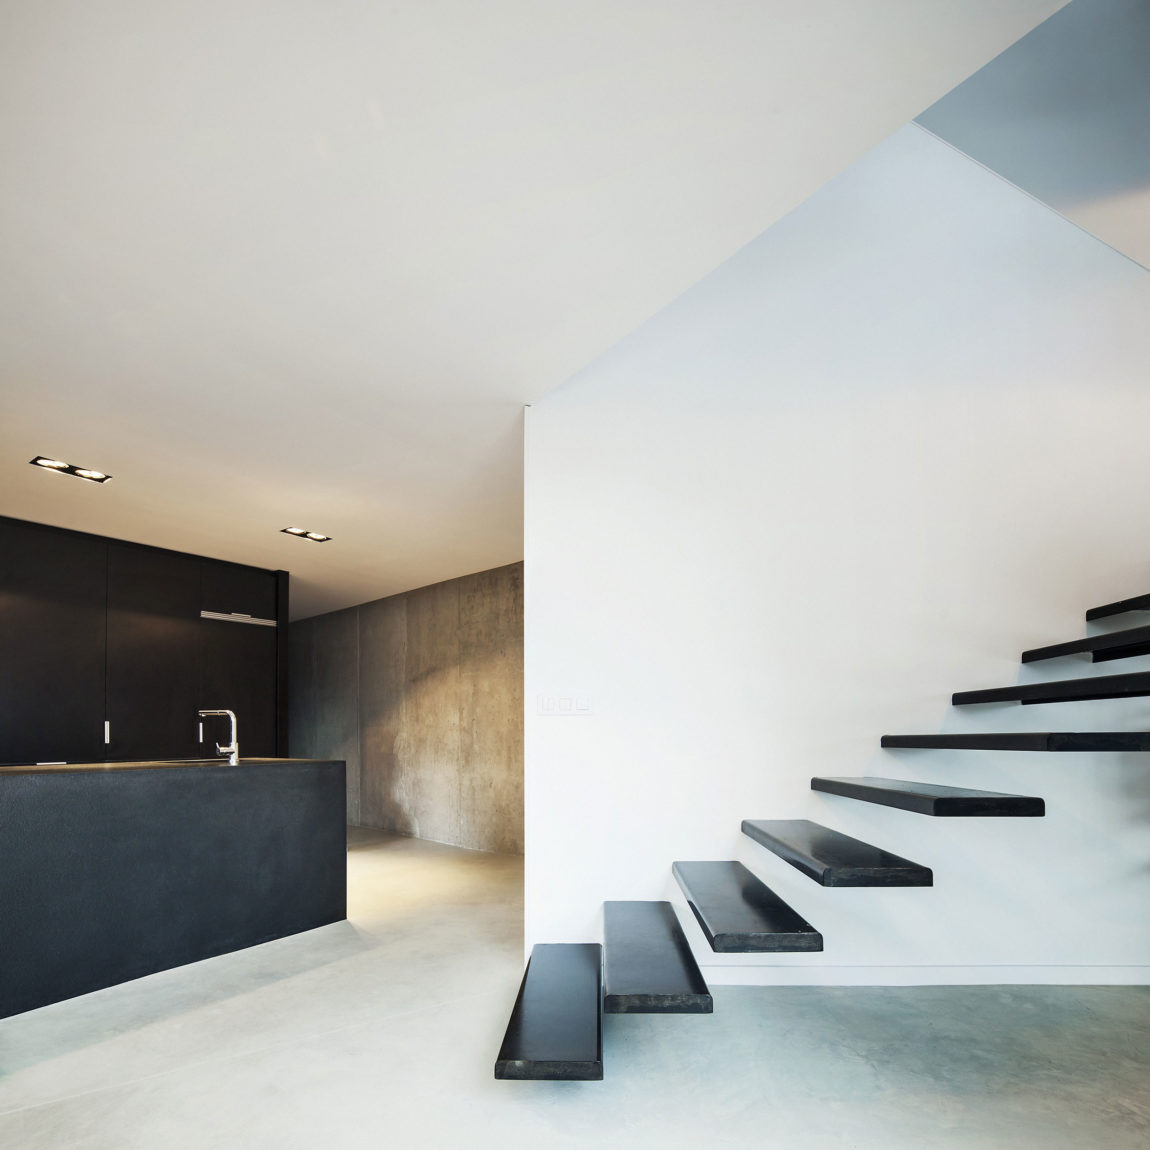 House AT by MIRAG Arquitectura i Gestió (6)